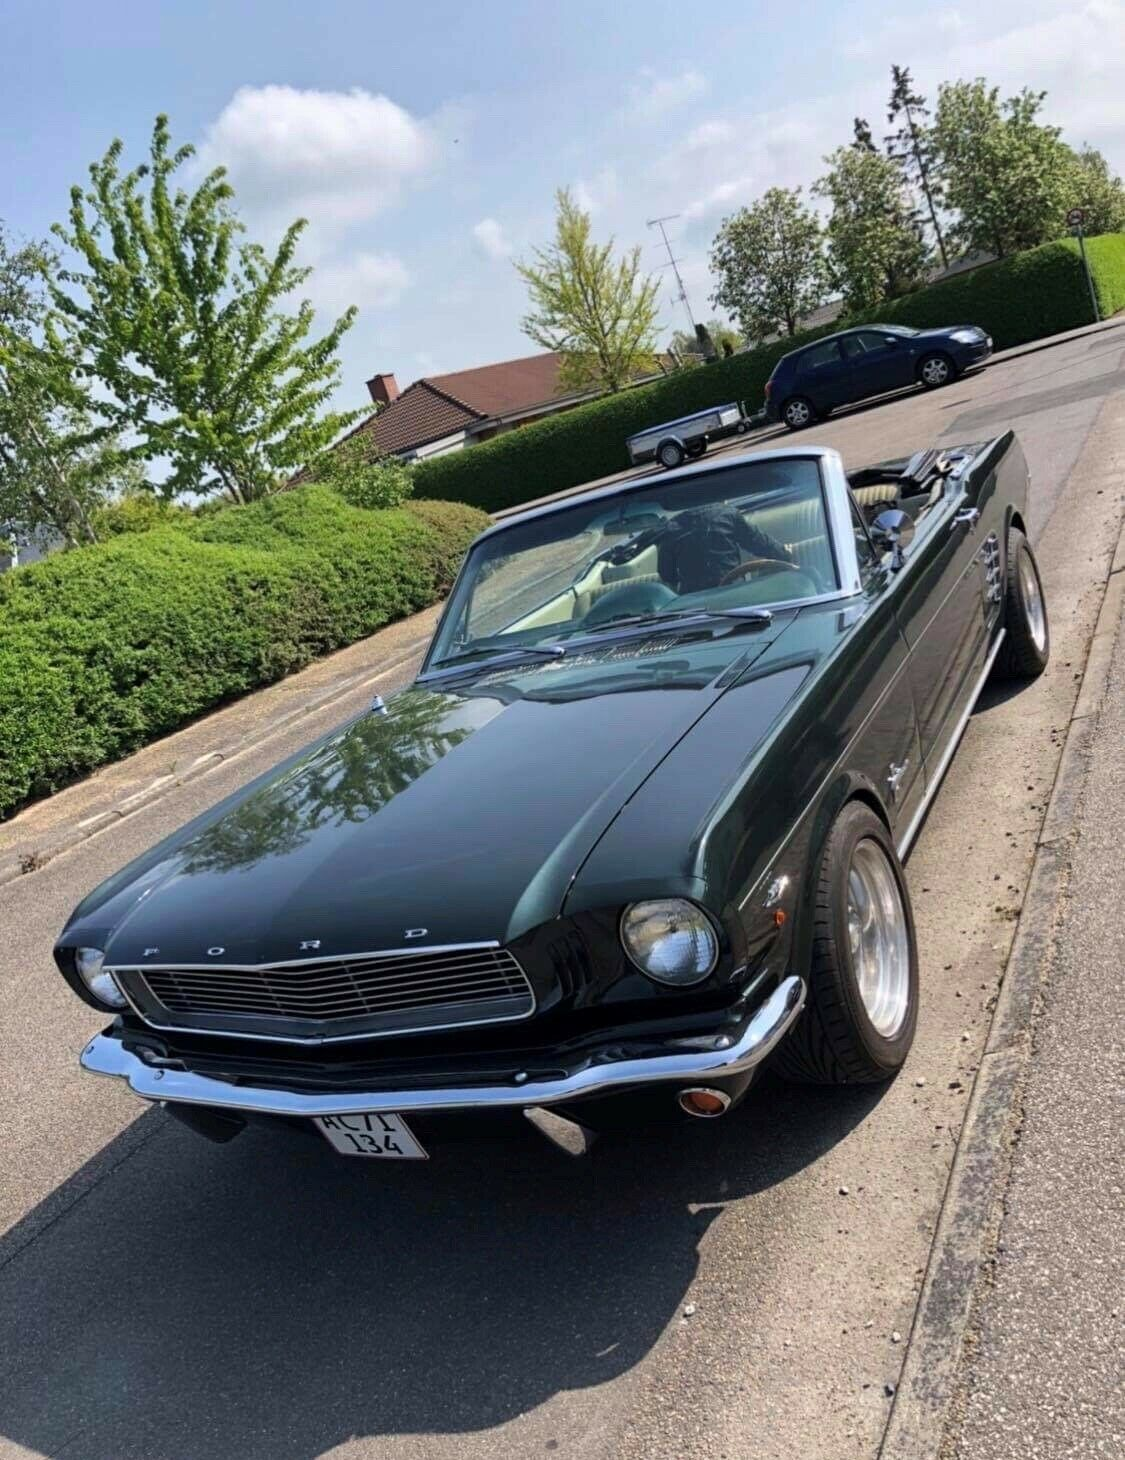 Ford Mustang 4,7 V8 289cui. 2d